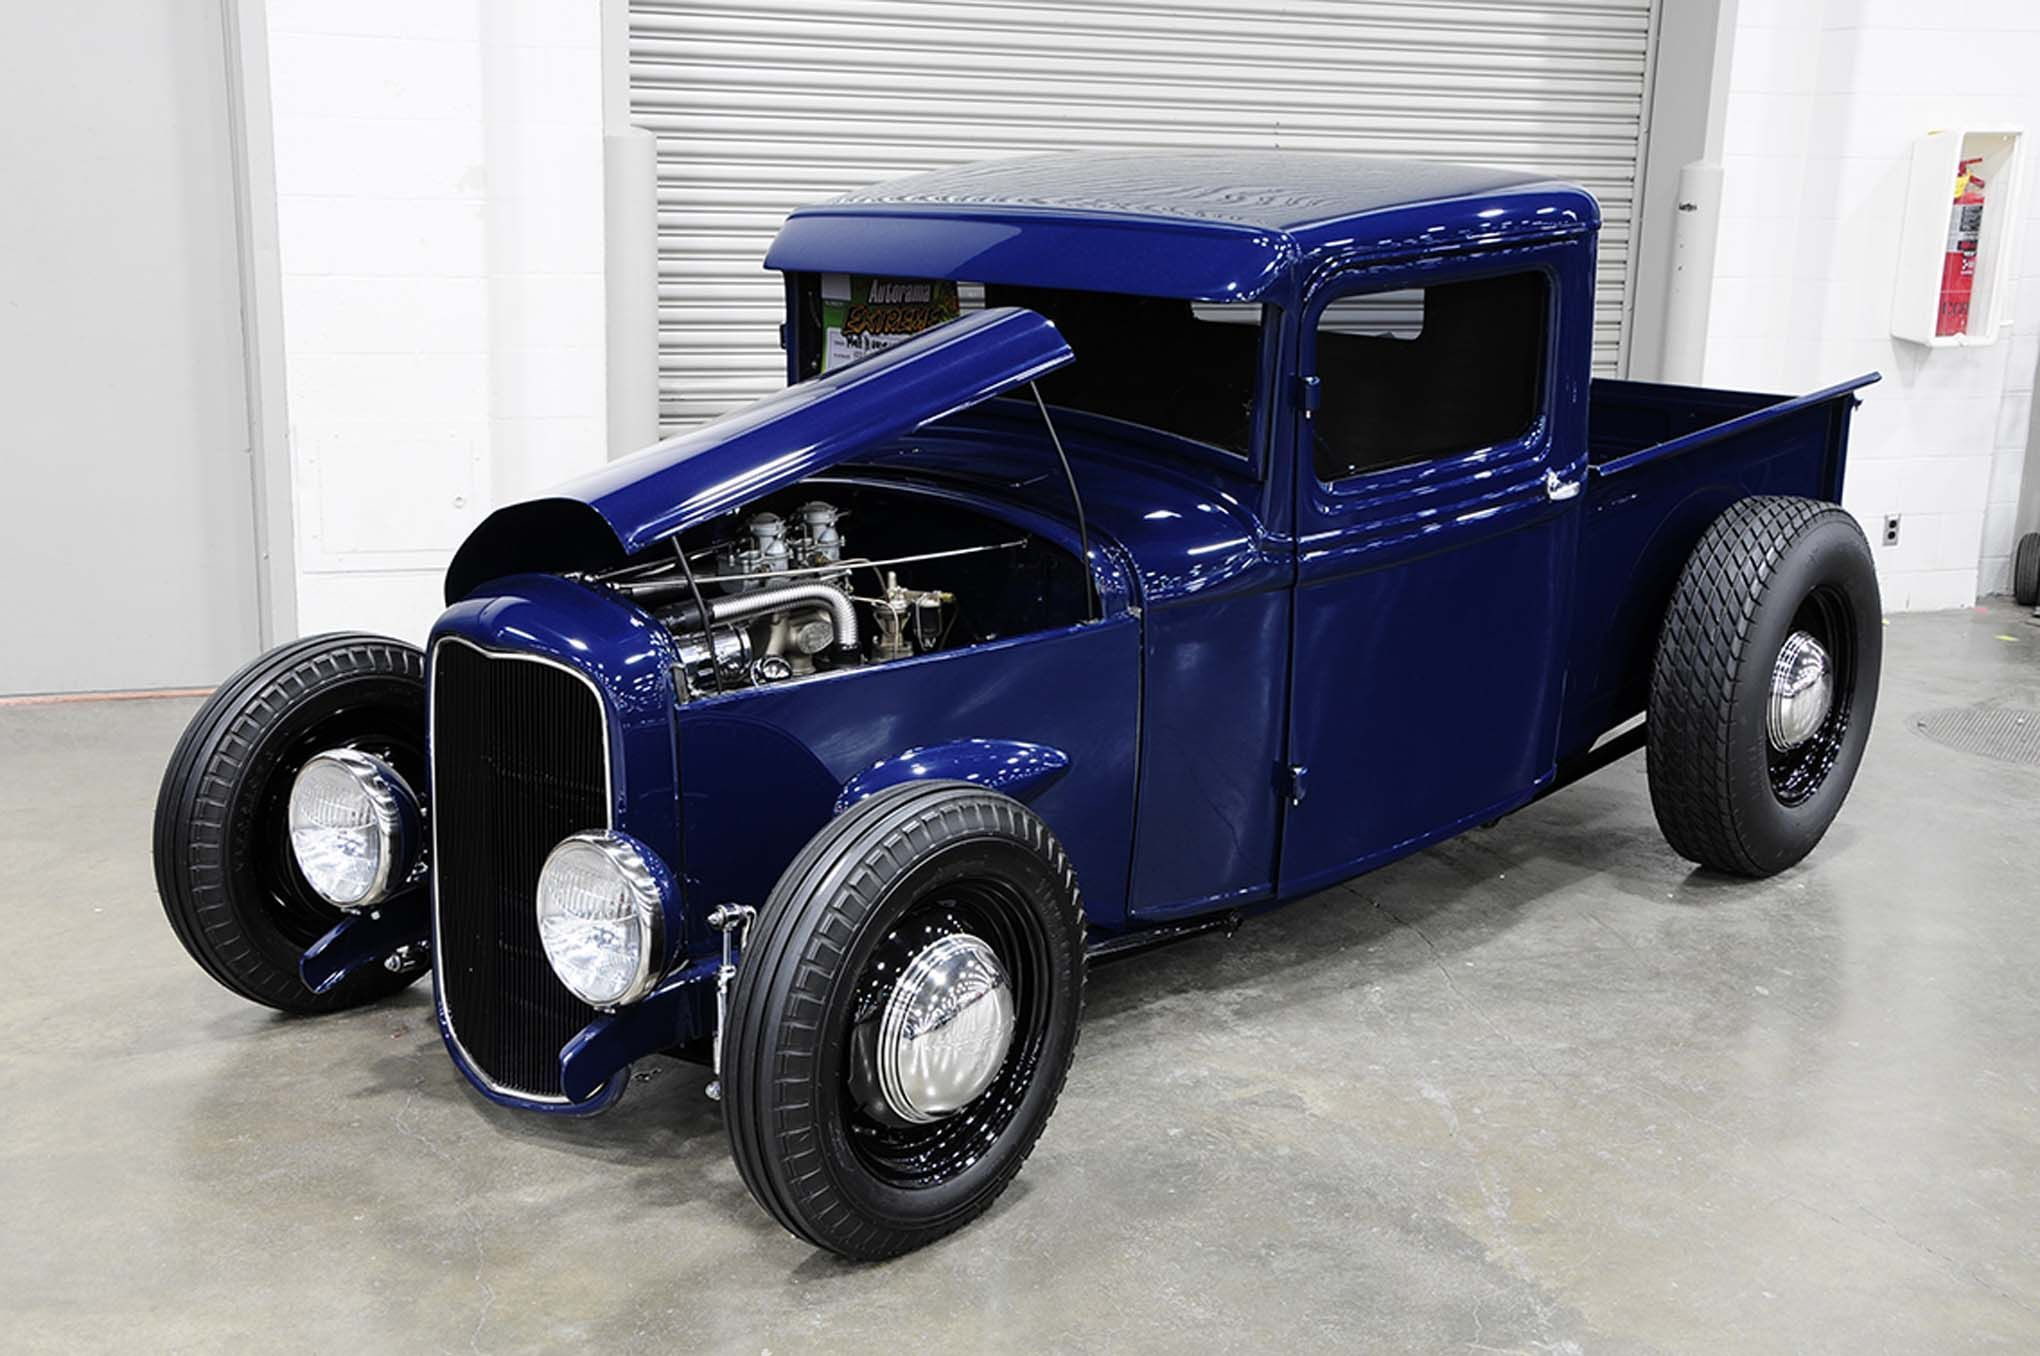 traditional hot rods | Best of Traditional Hot Rods - 185 Examples ...